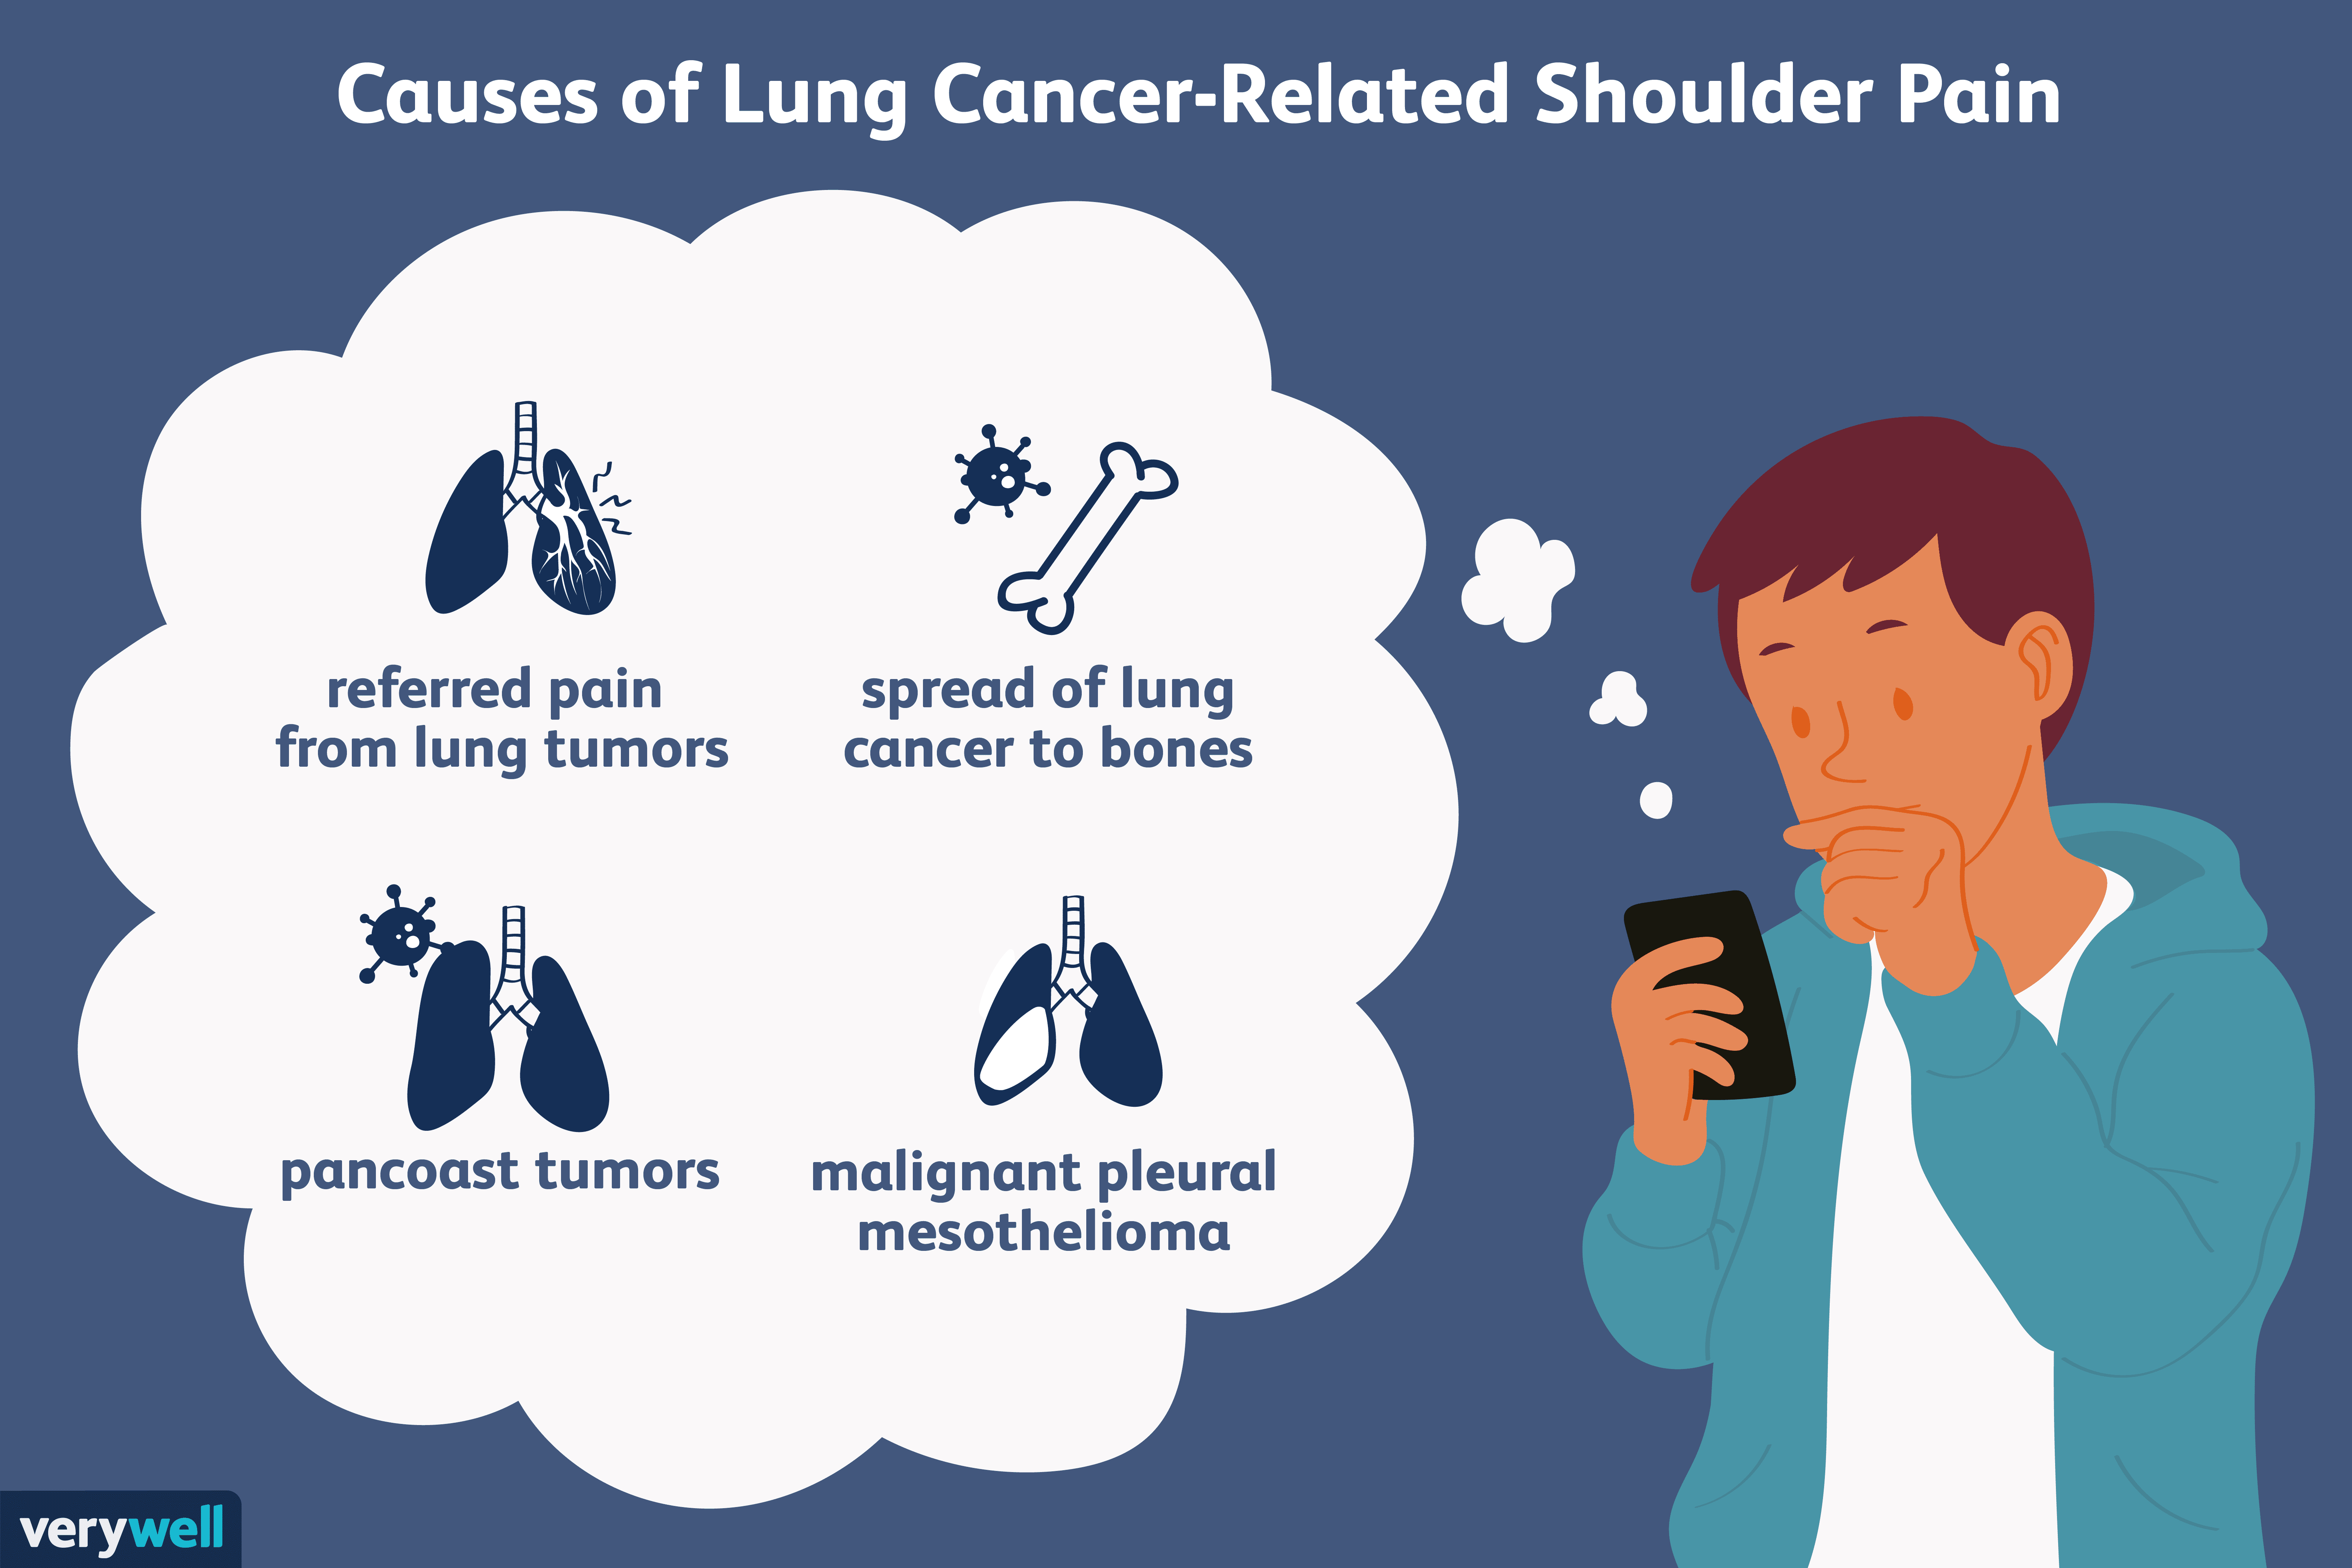 When Might Shoulder Pain Be a Sign of Lung Cancer or